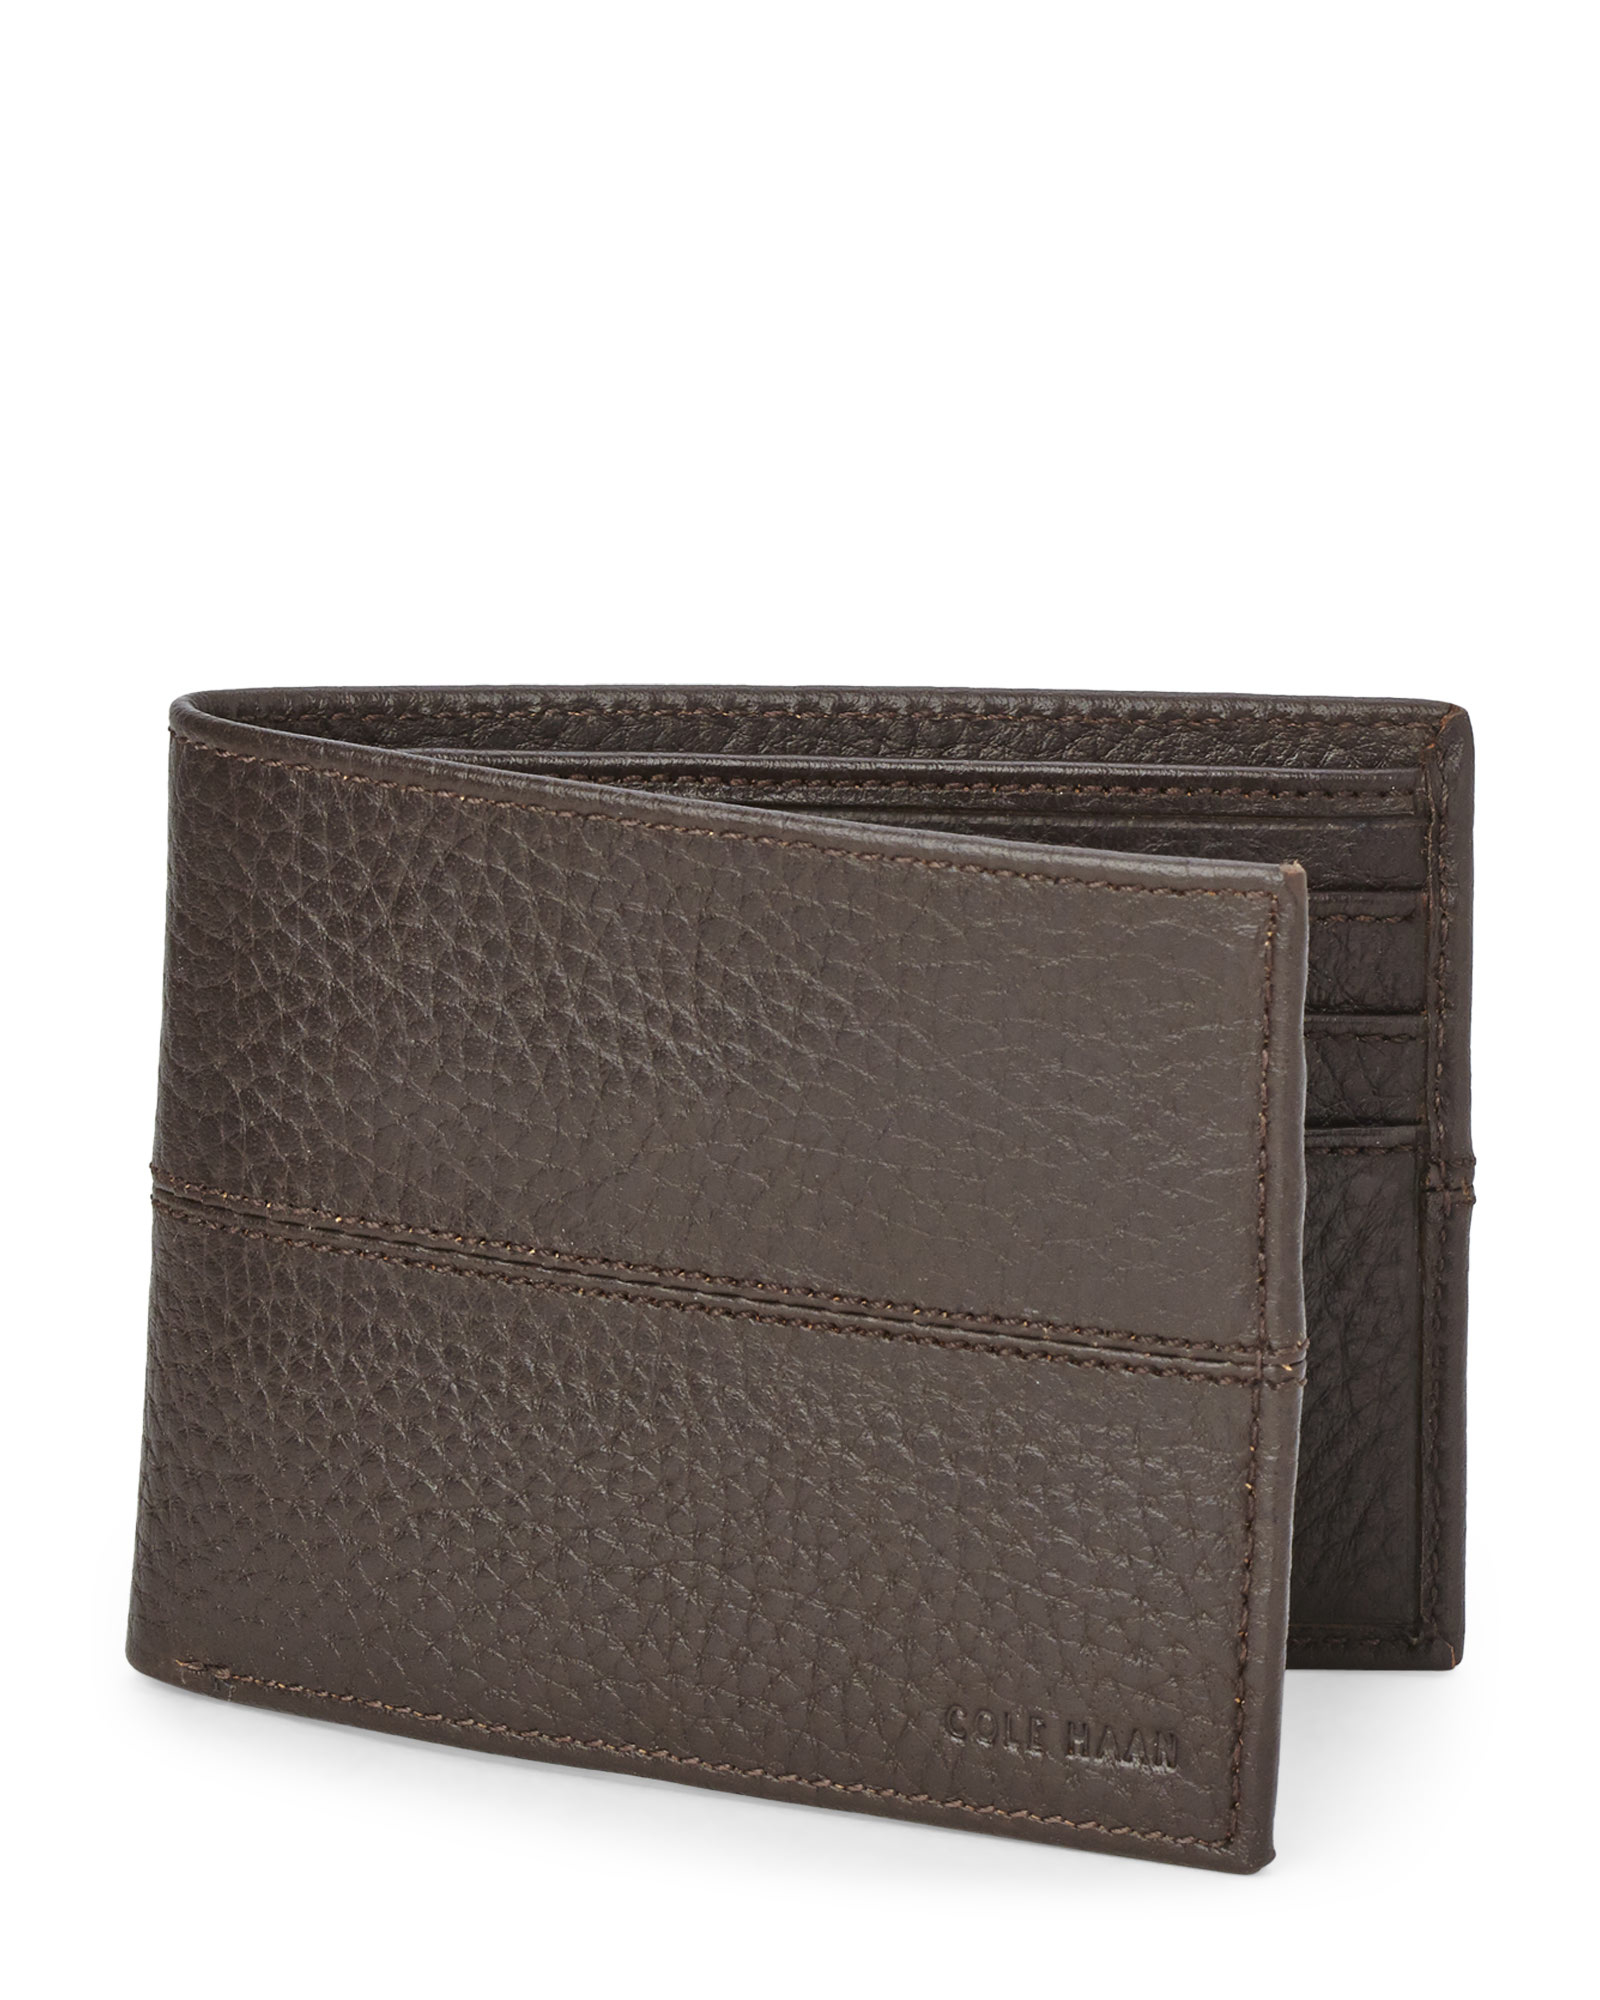 faa3770d274 Cole Haan Leather Billfold Wallet in Brown for Men - Lyst